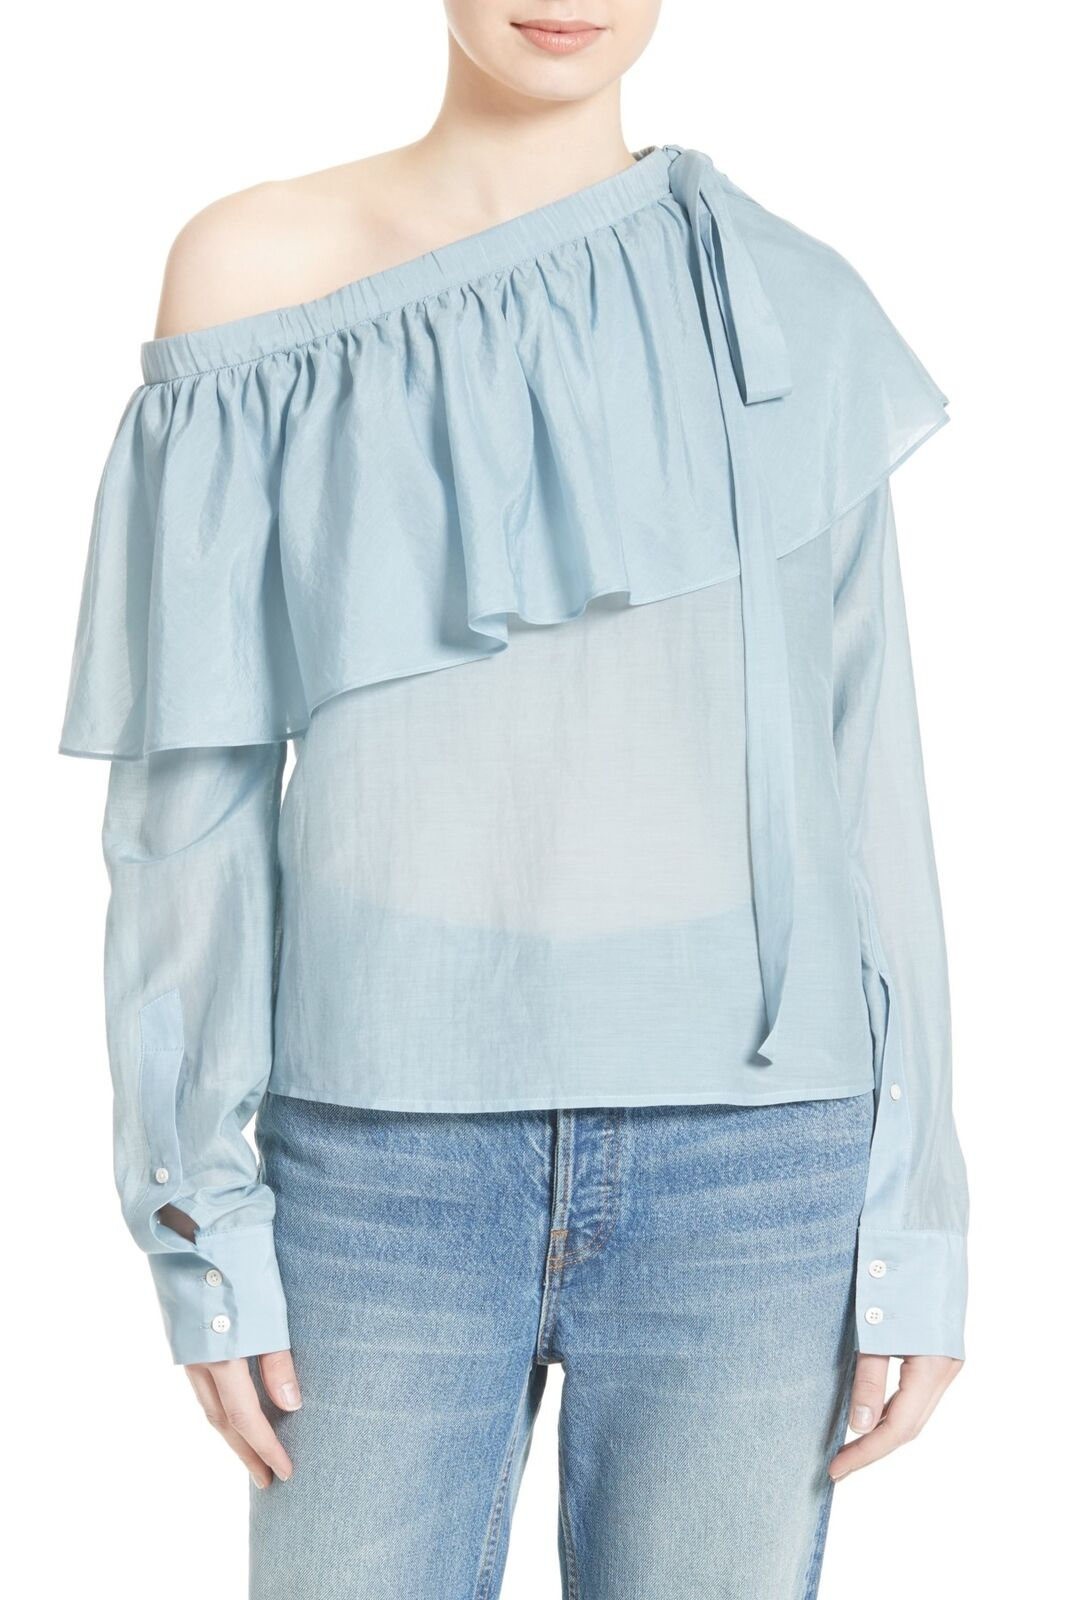 NEW ROBERT RODRIGUEZ Ruffle One Shoulder TOP BLOUSE  Größe 2 OCEAN NORDSTROM